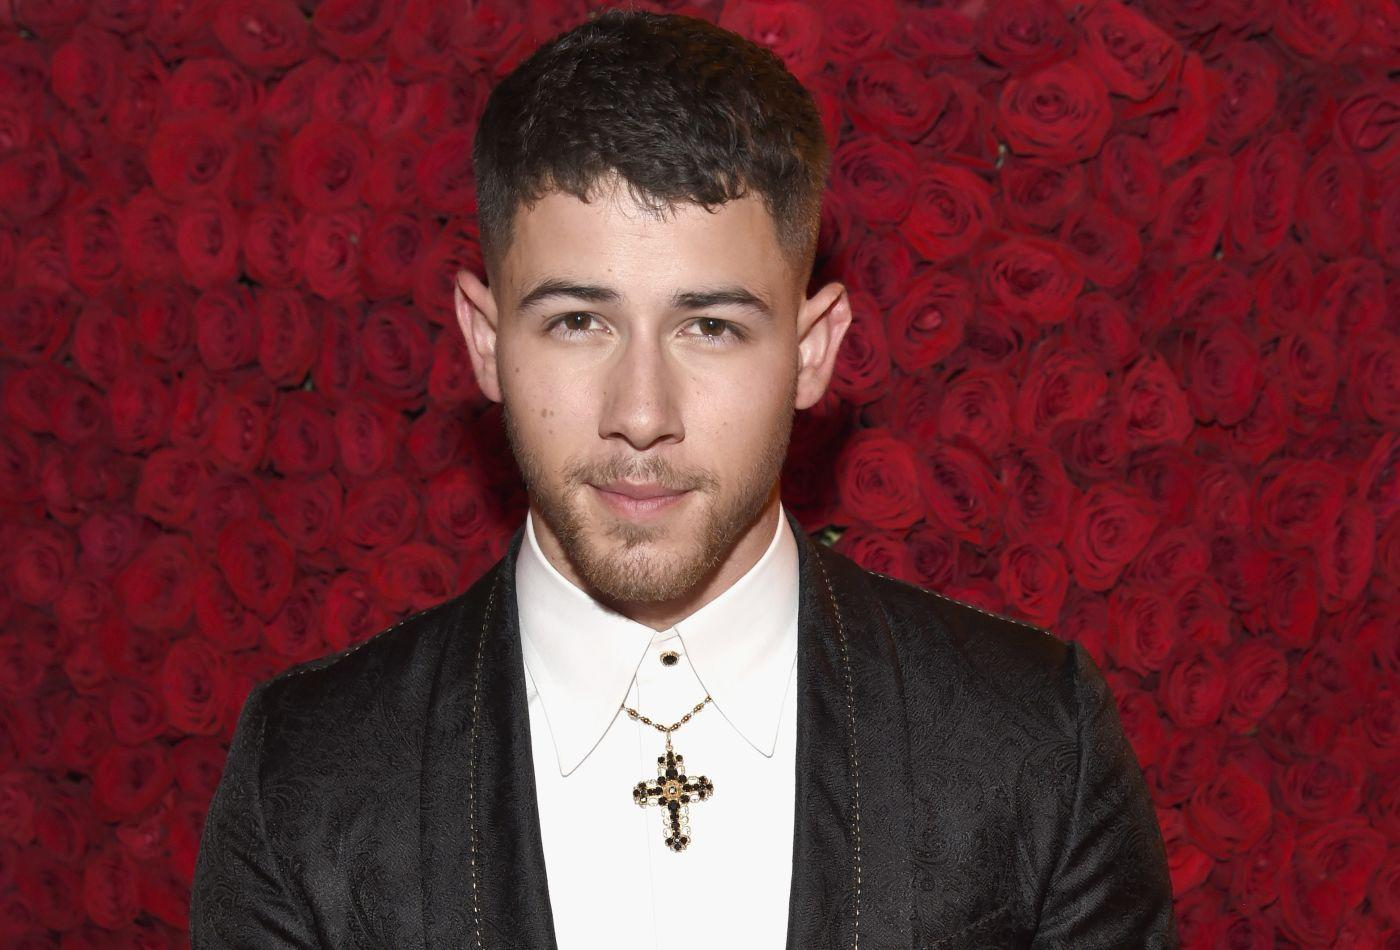 Nick Jonas Gets Touched Innaproproately By A Fan During Concert - Check Out The Groping That Got Everyone Furious!